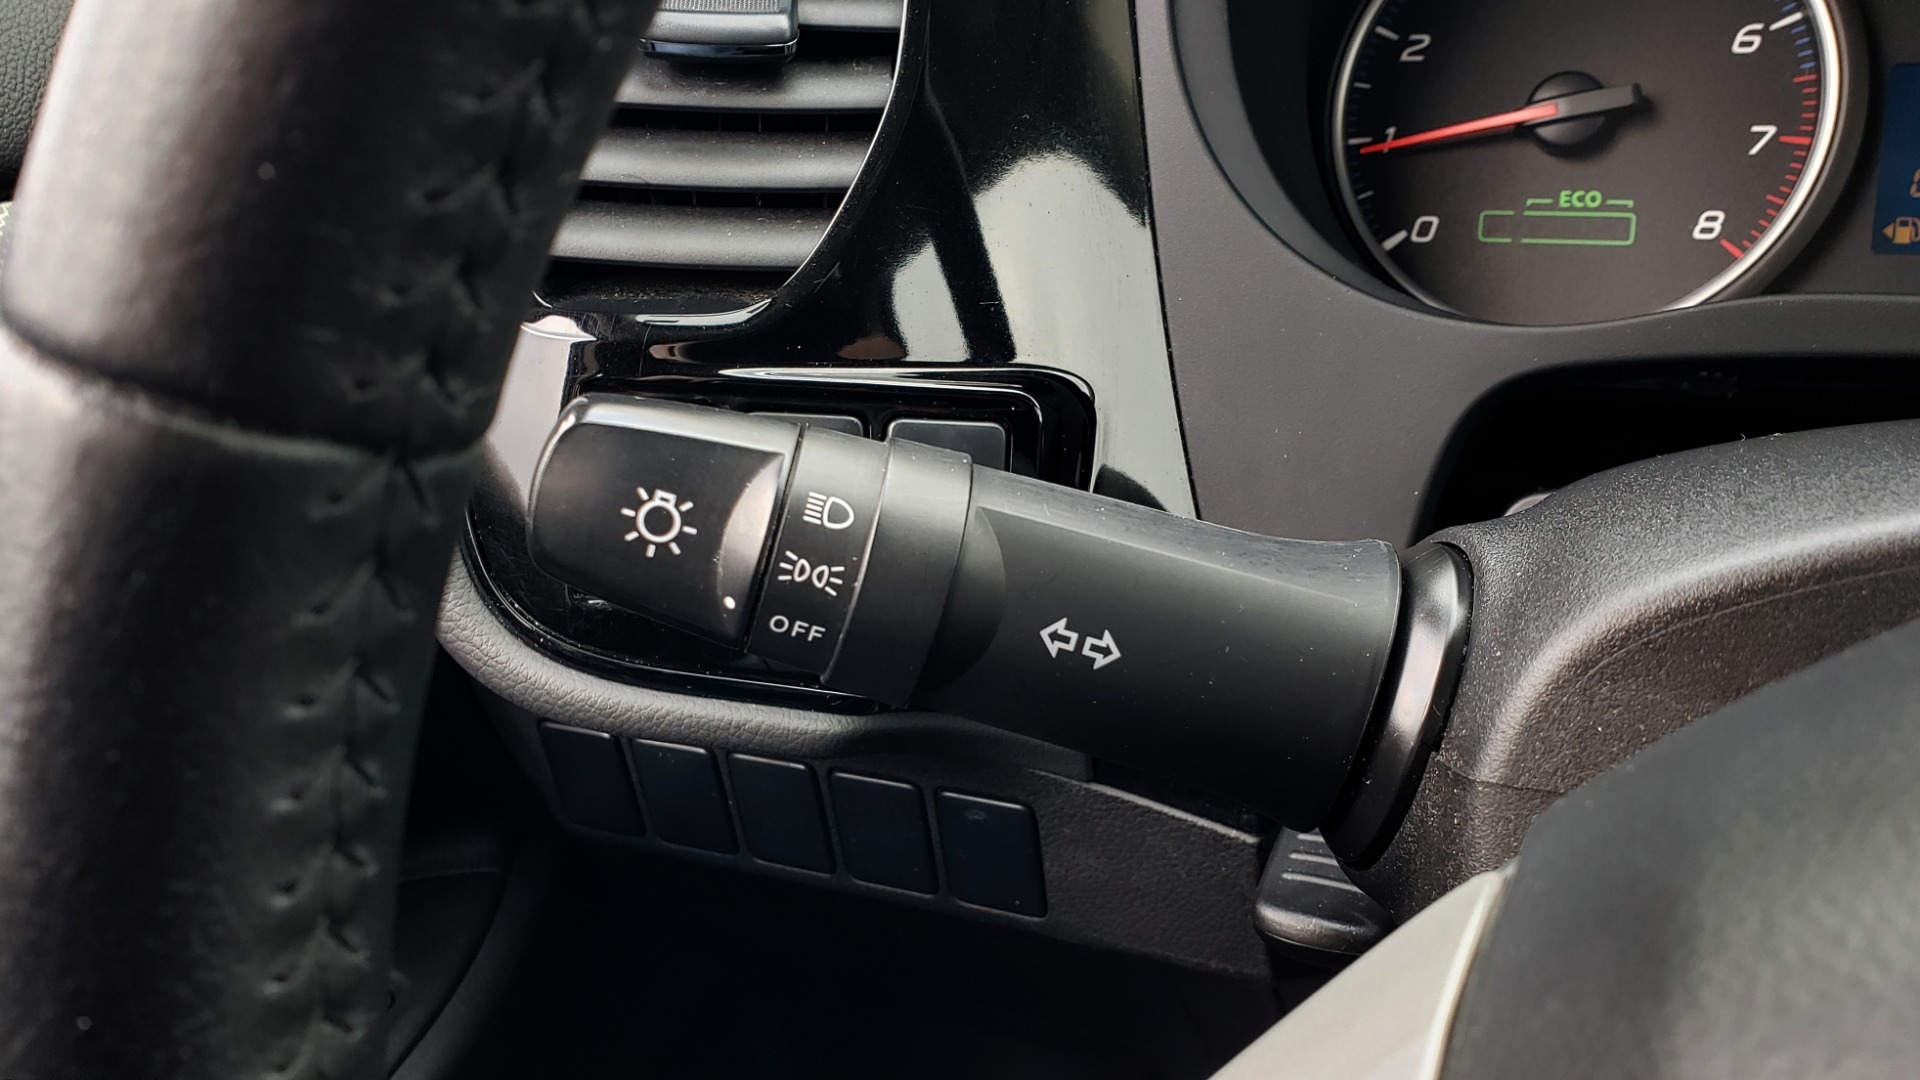 Used 2015 Mitsubishi OUTLANDER ES 2.4L SUV / CVT / FWD / KEYLESS ENTRY / 16-IN WHEELS for sale $12,995 at Formula Imports in Charlotte NC 28227 31